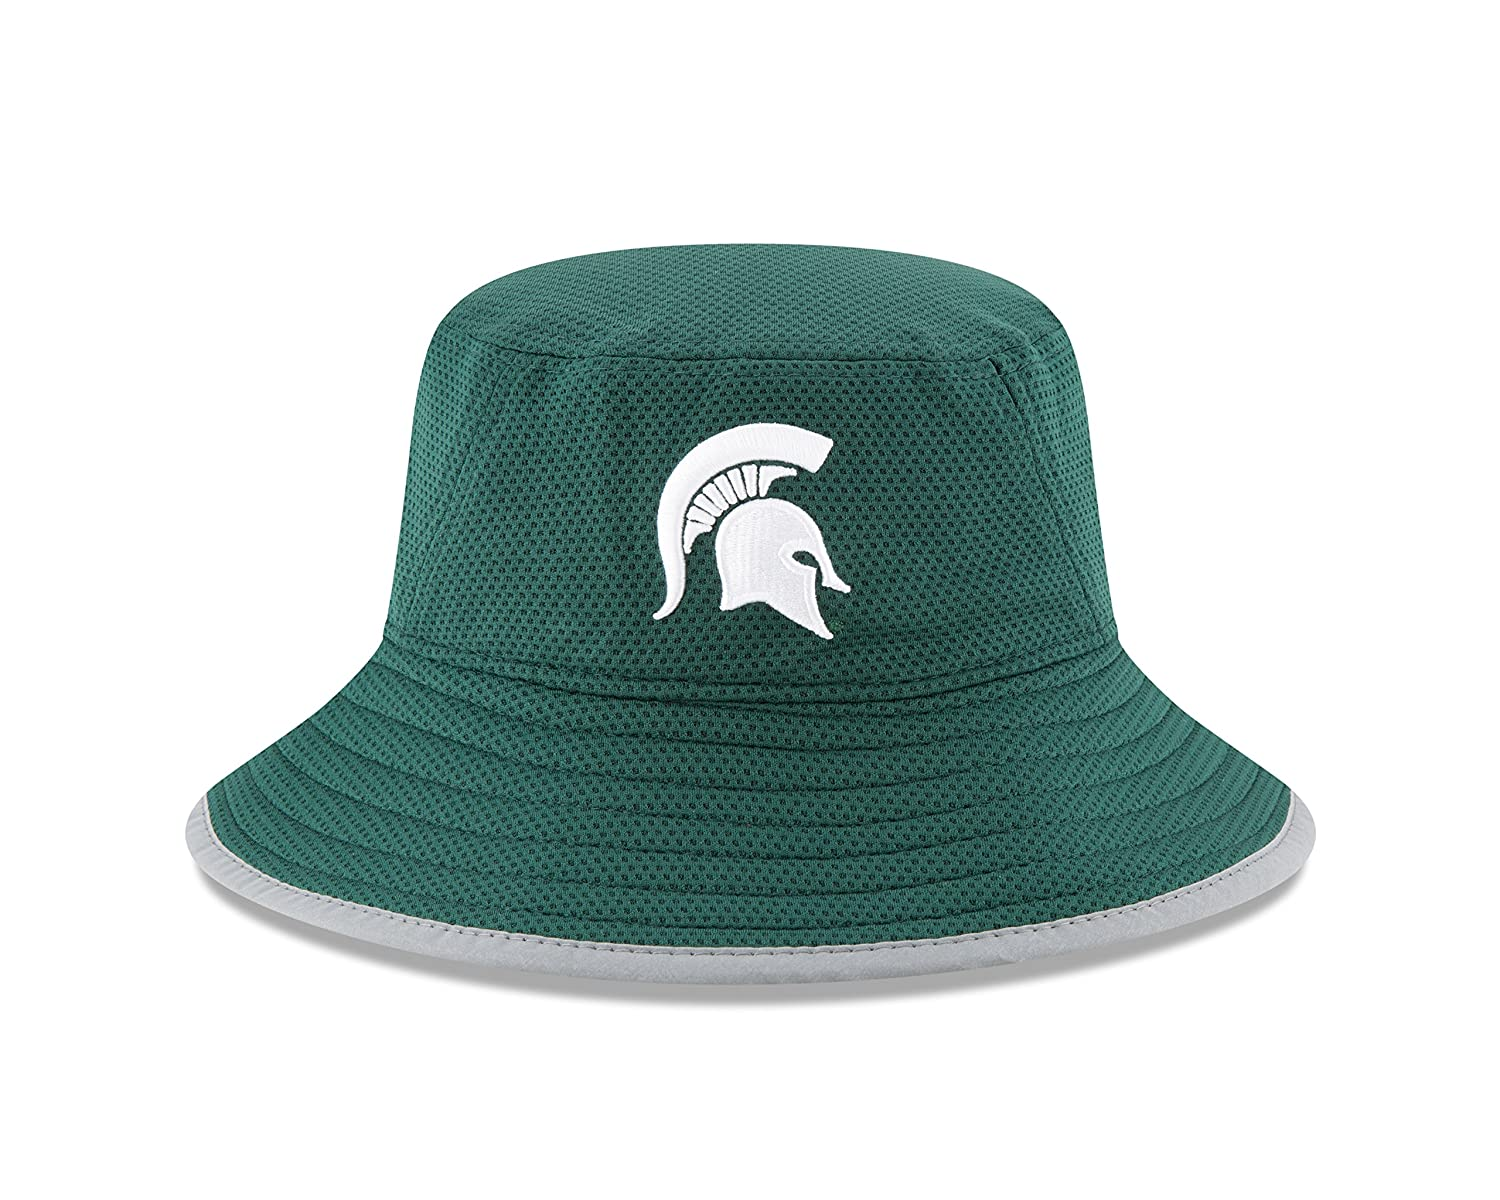 611f7bba0 Amazon.com   New Era NCAA Michigan State Spartans Adult NE16 Training  Bucket Hat